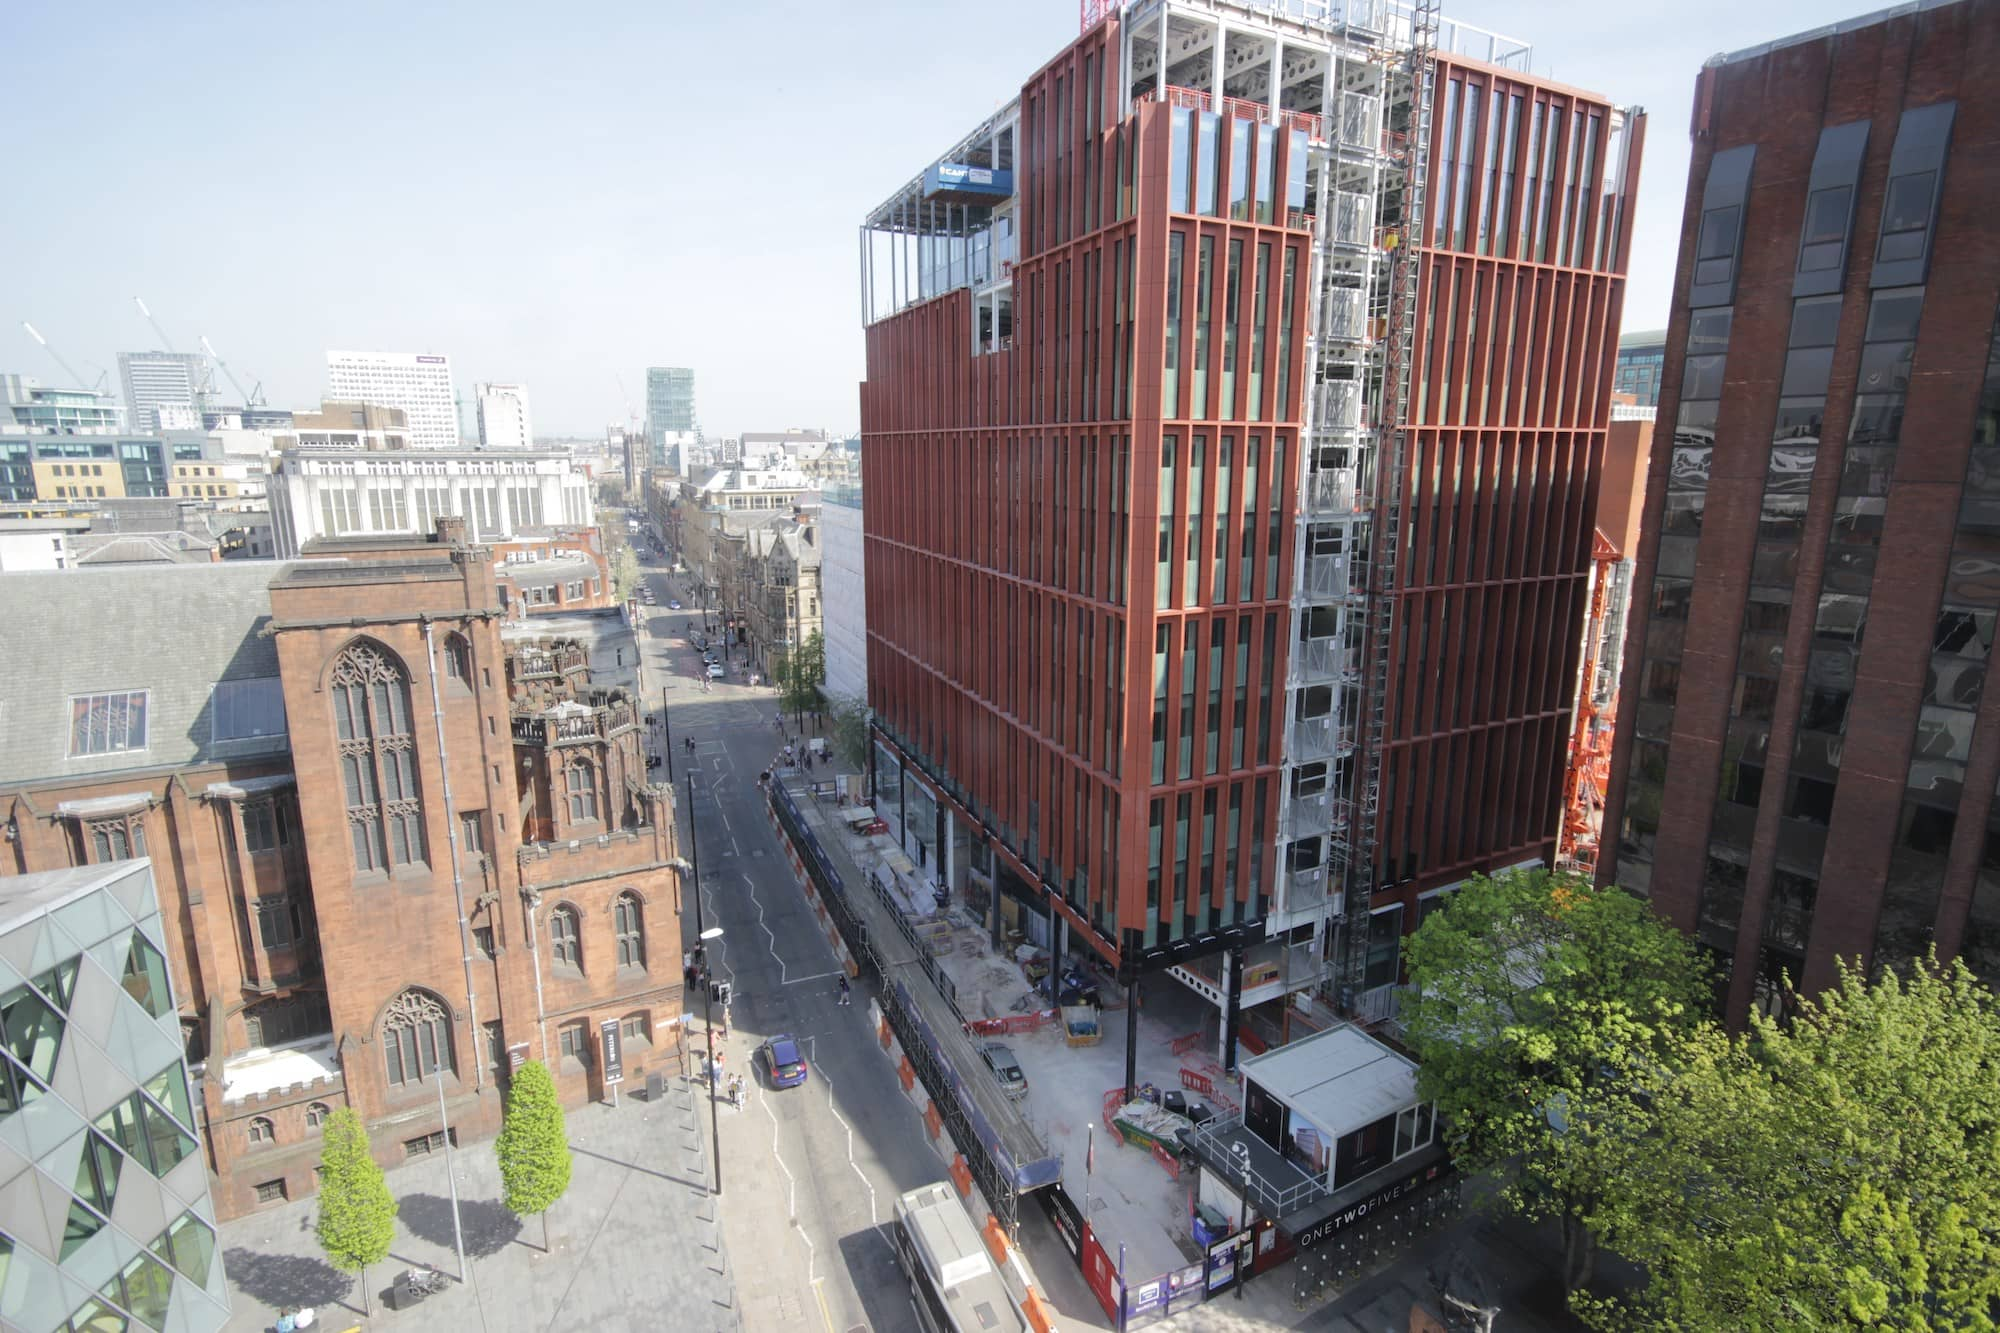 Construction of 125 Deansgate revealed through our time-lapse video